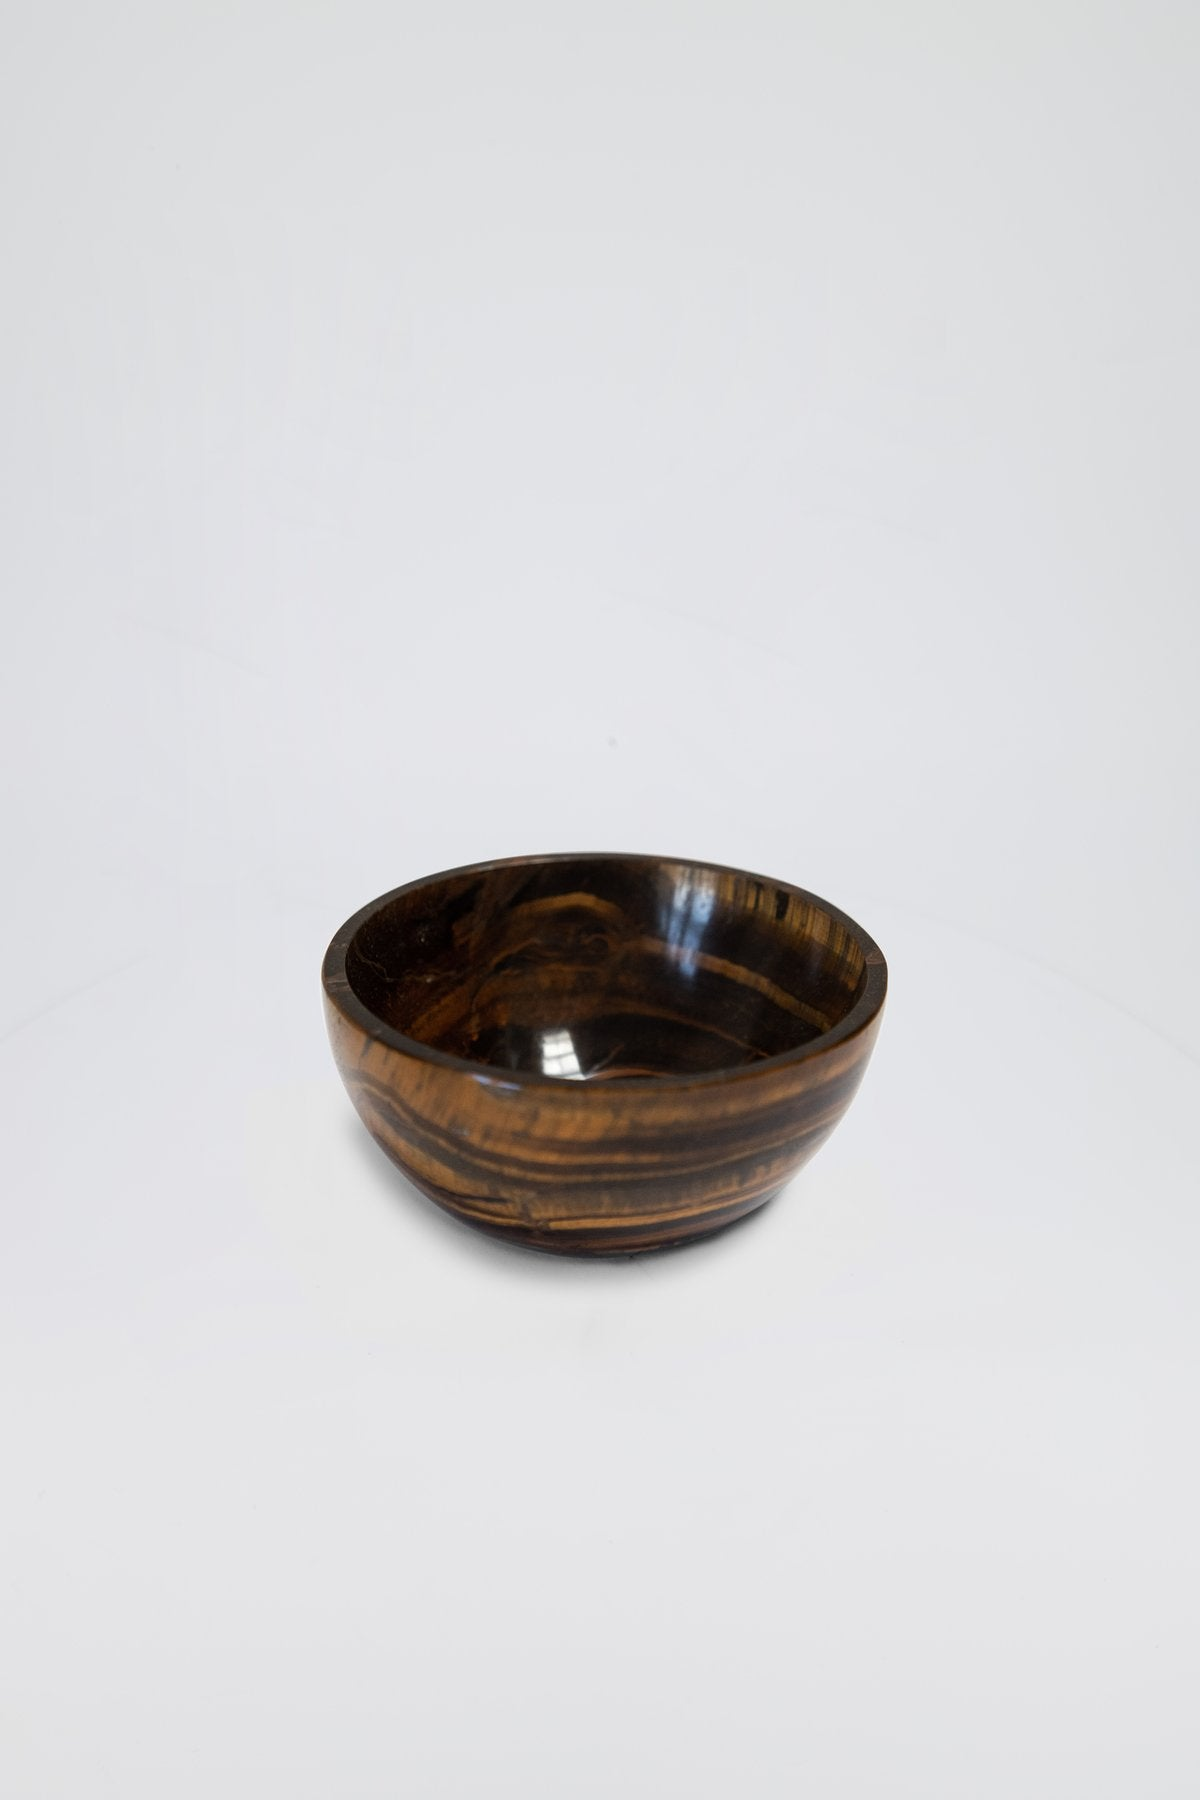 Tiger's Eye Bowl.